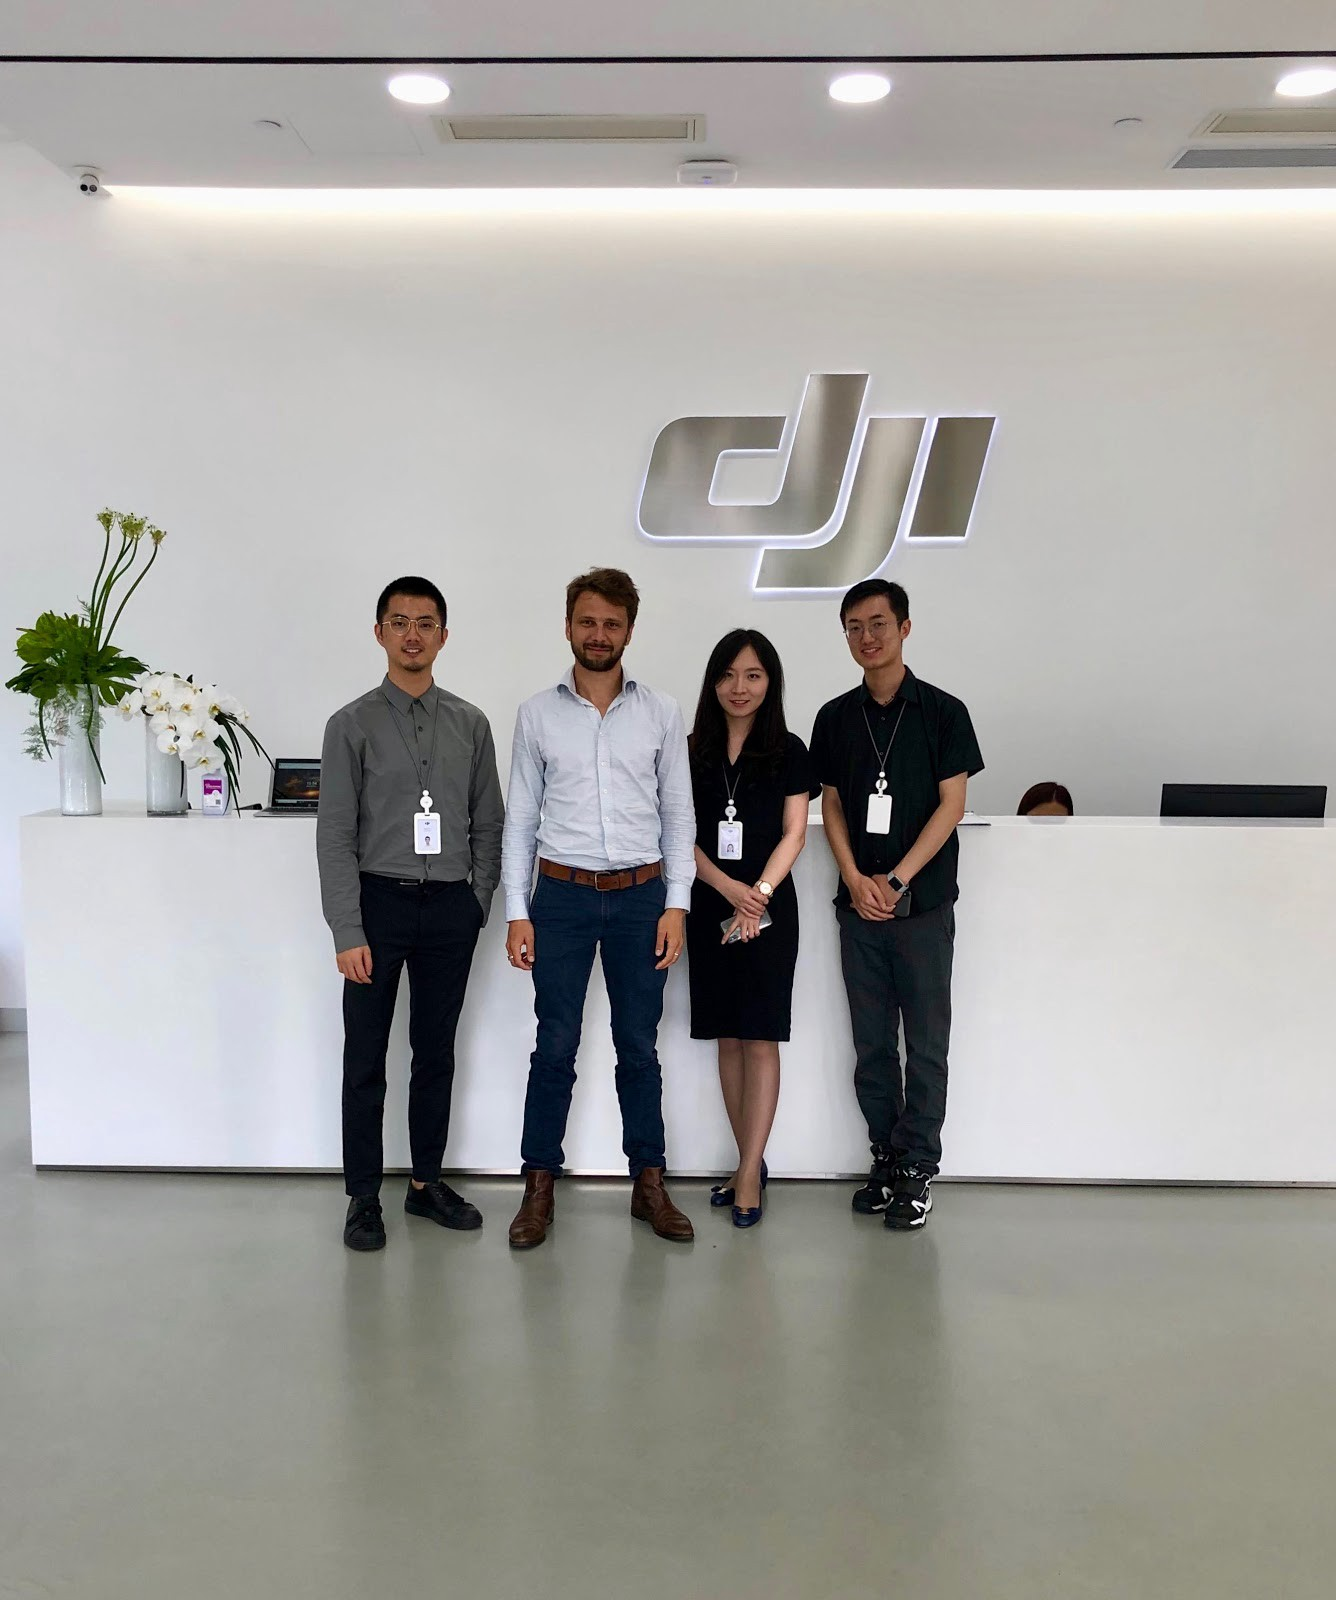 DJI and Sterblue meeting at DJI headquarter in Shenzhen